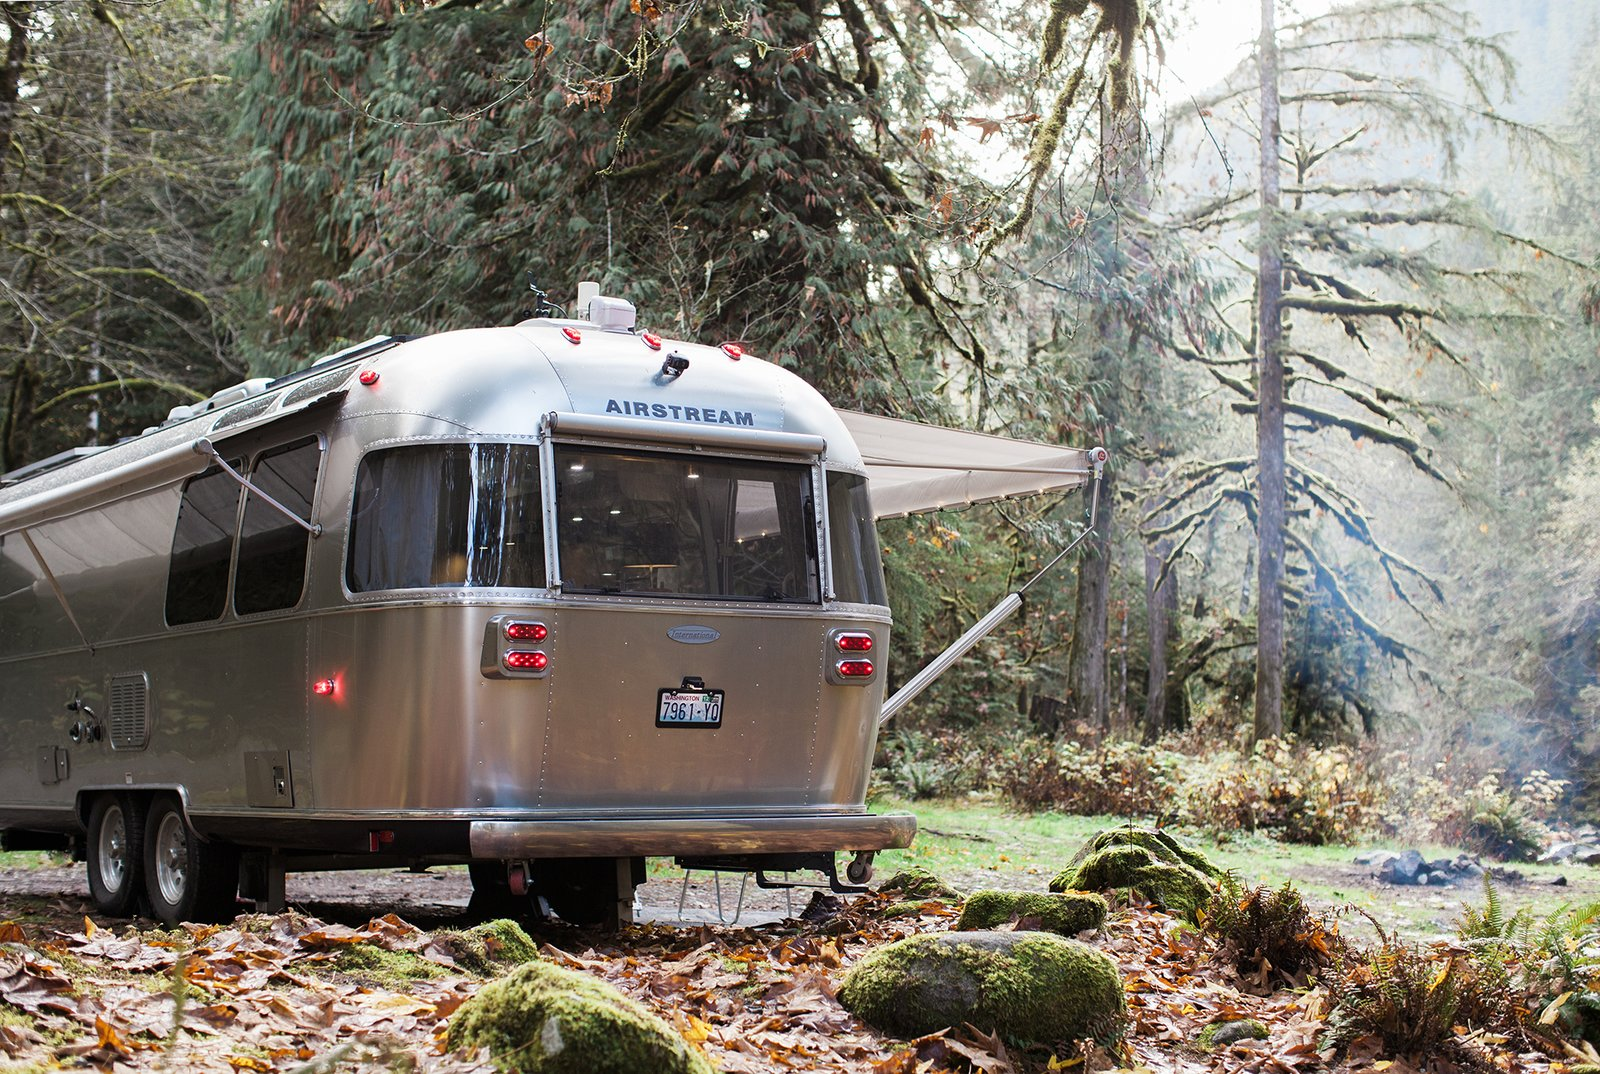 Articles about 8 ways renovate airstream on Dwell.com